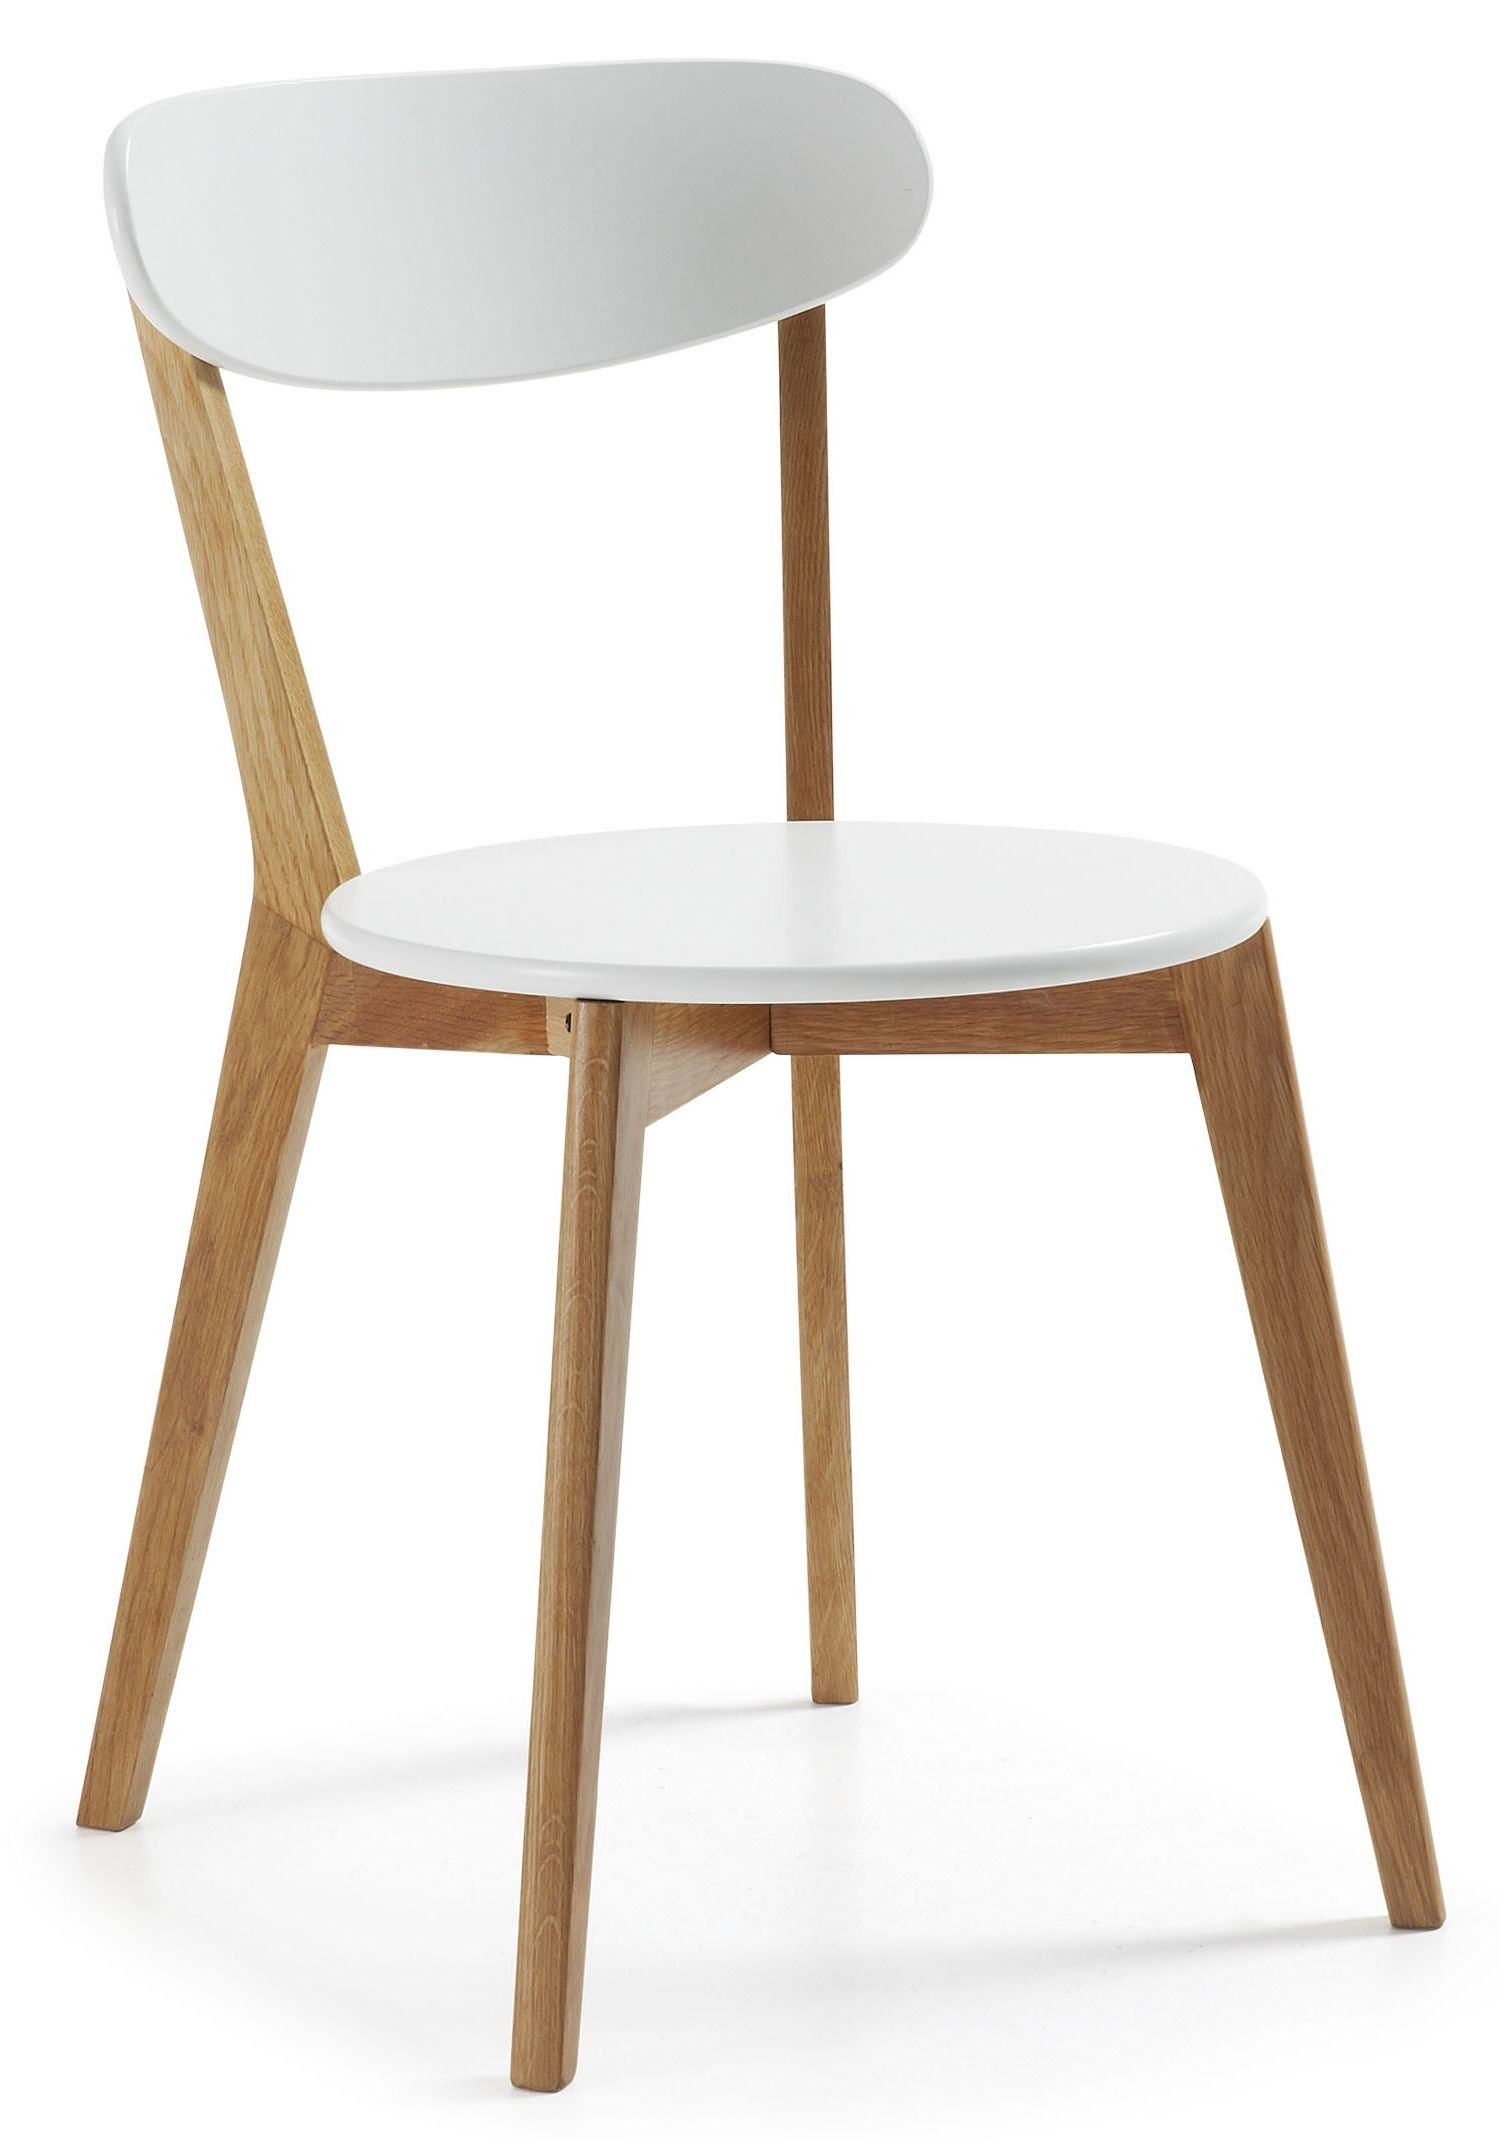 Luana chair Kave wit Keuken & Eethoek Pinterest